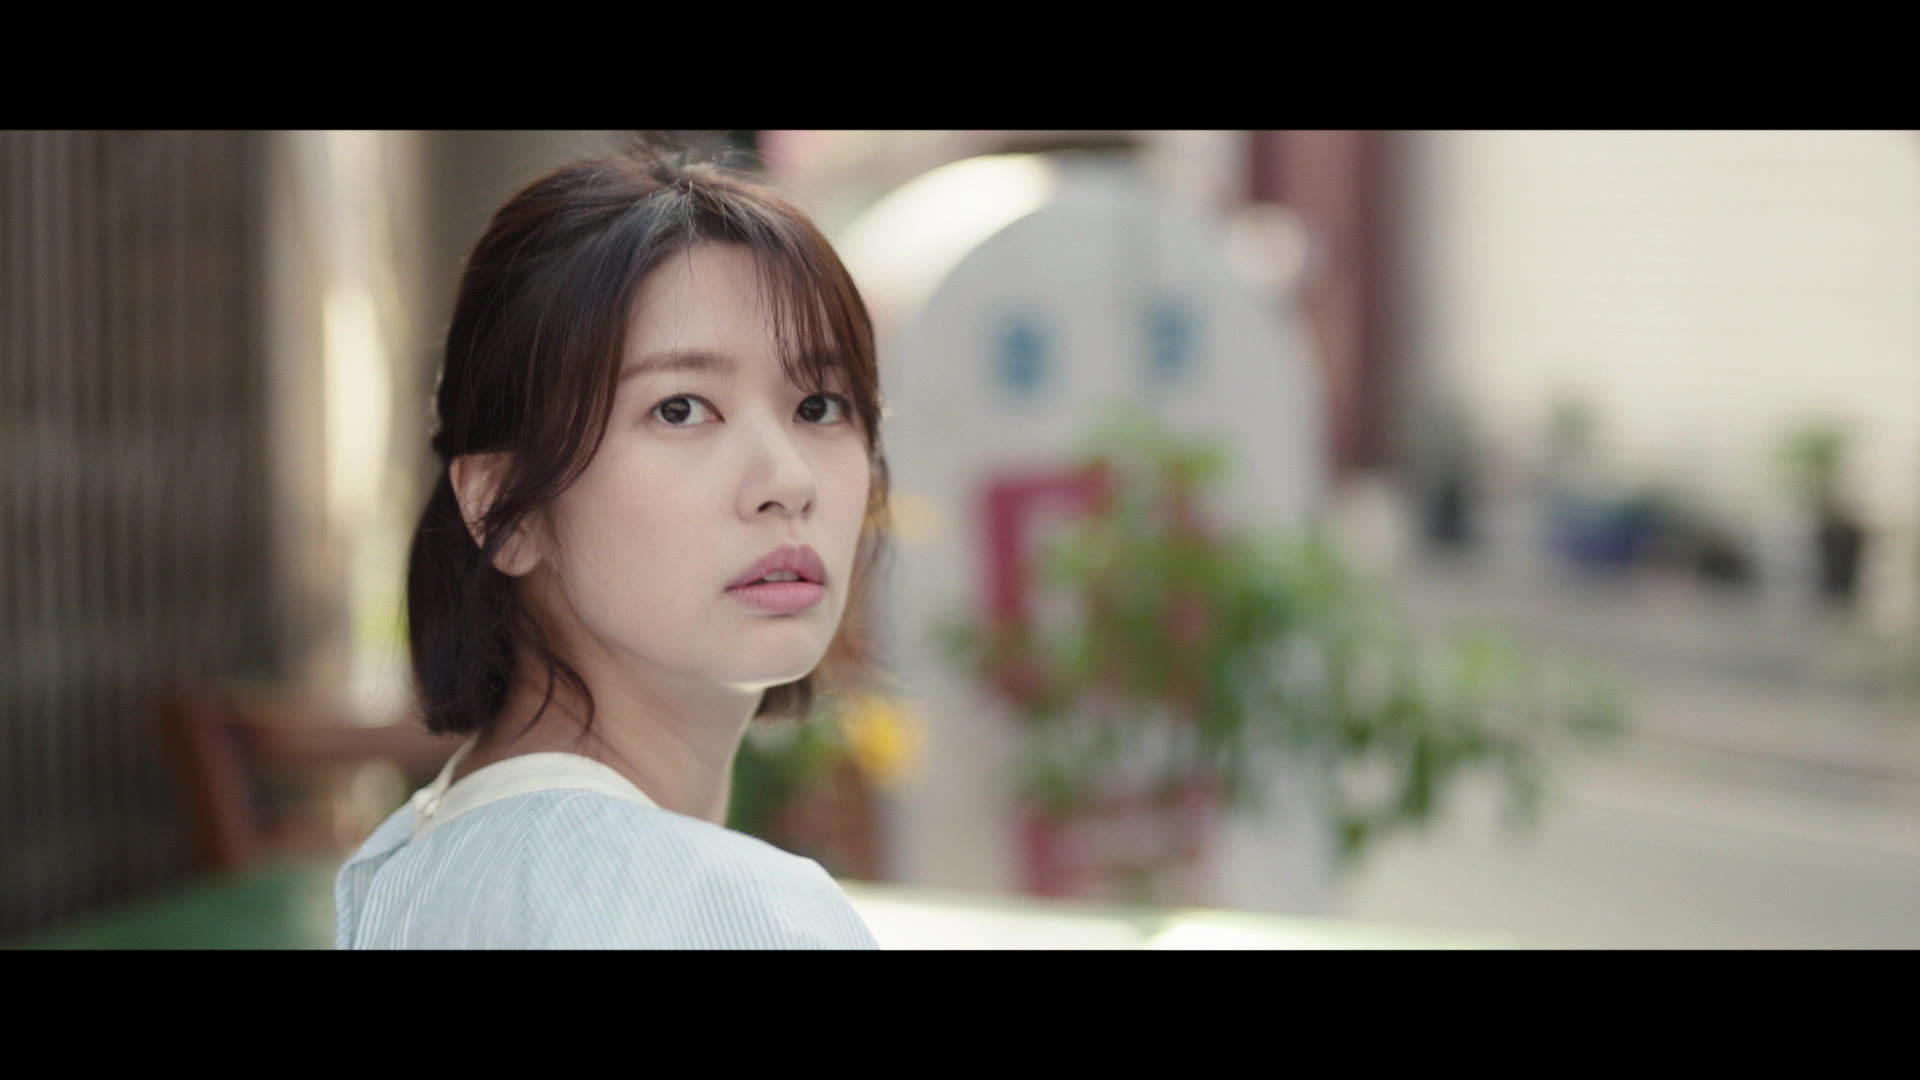 Episode 4 Preview: The Smile Has Left Your Eyes